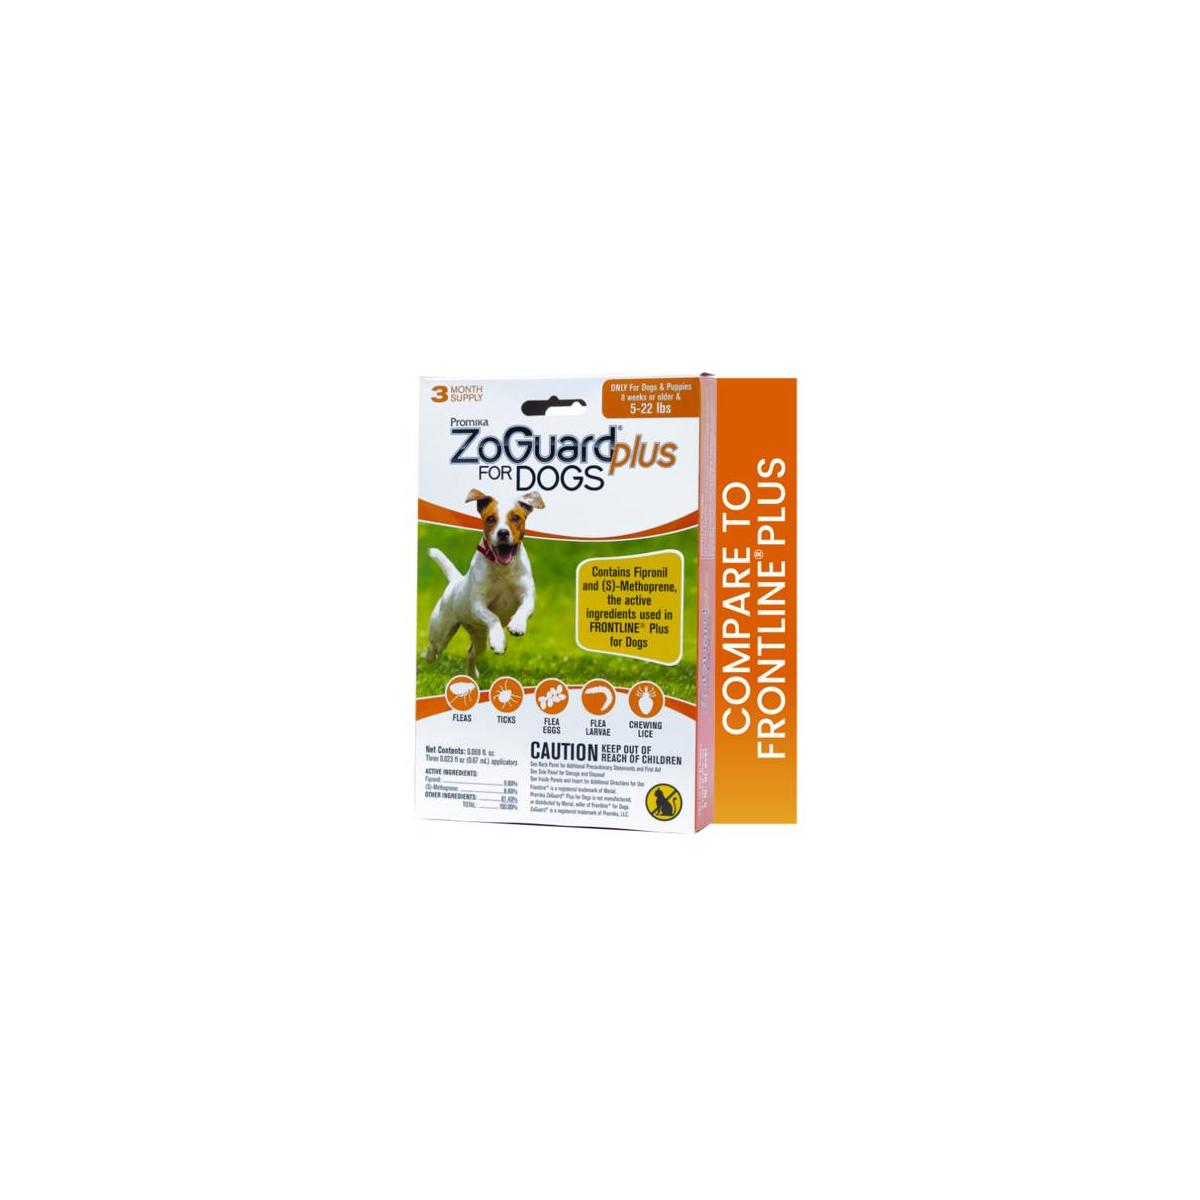 ZoGuard Plus Flea and Tick Prevention for Dogs, Small, 5-22 lbs